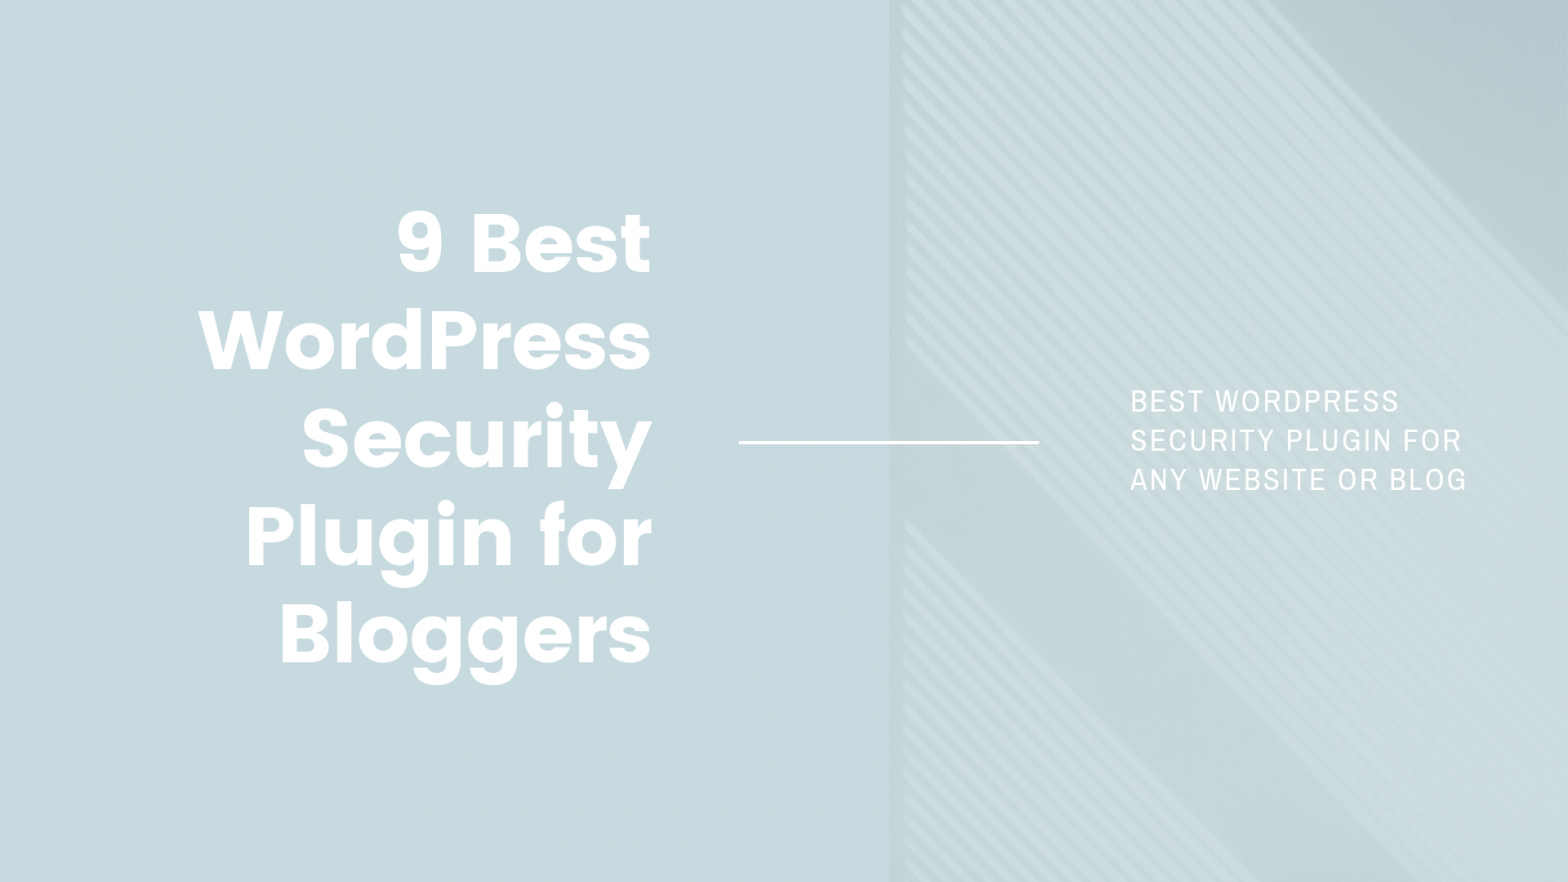 9 Best WordPress Security Plugin for Bloggers